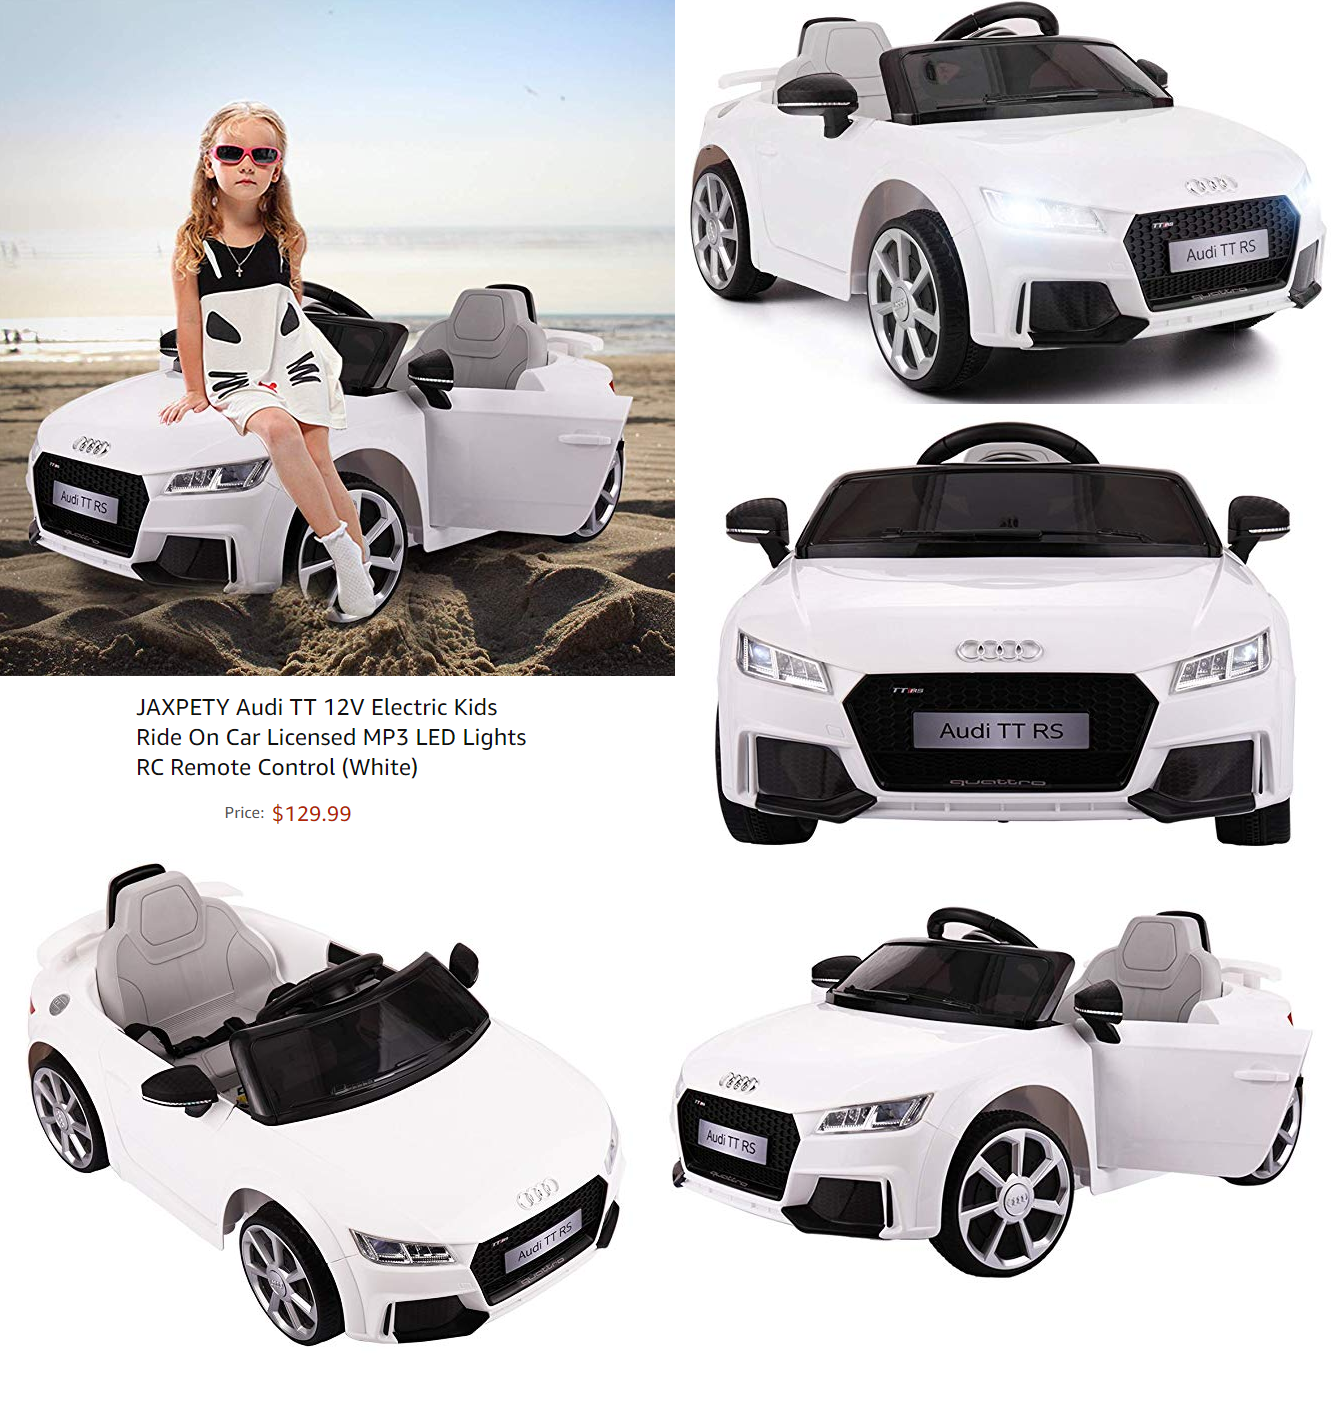 White 12V Audi TT RS Electric Kids Ride On Car Licensed R//C Remote Control Gifts